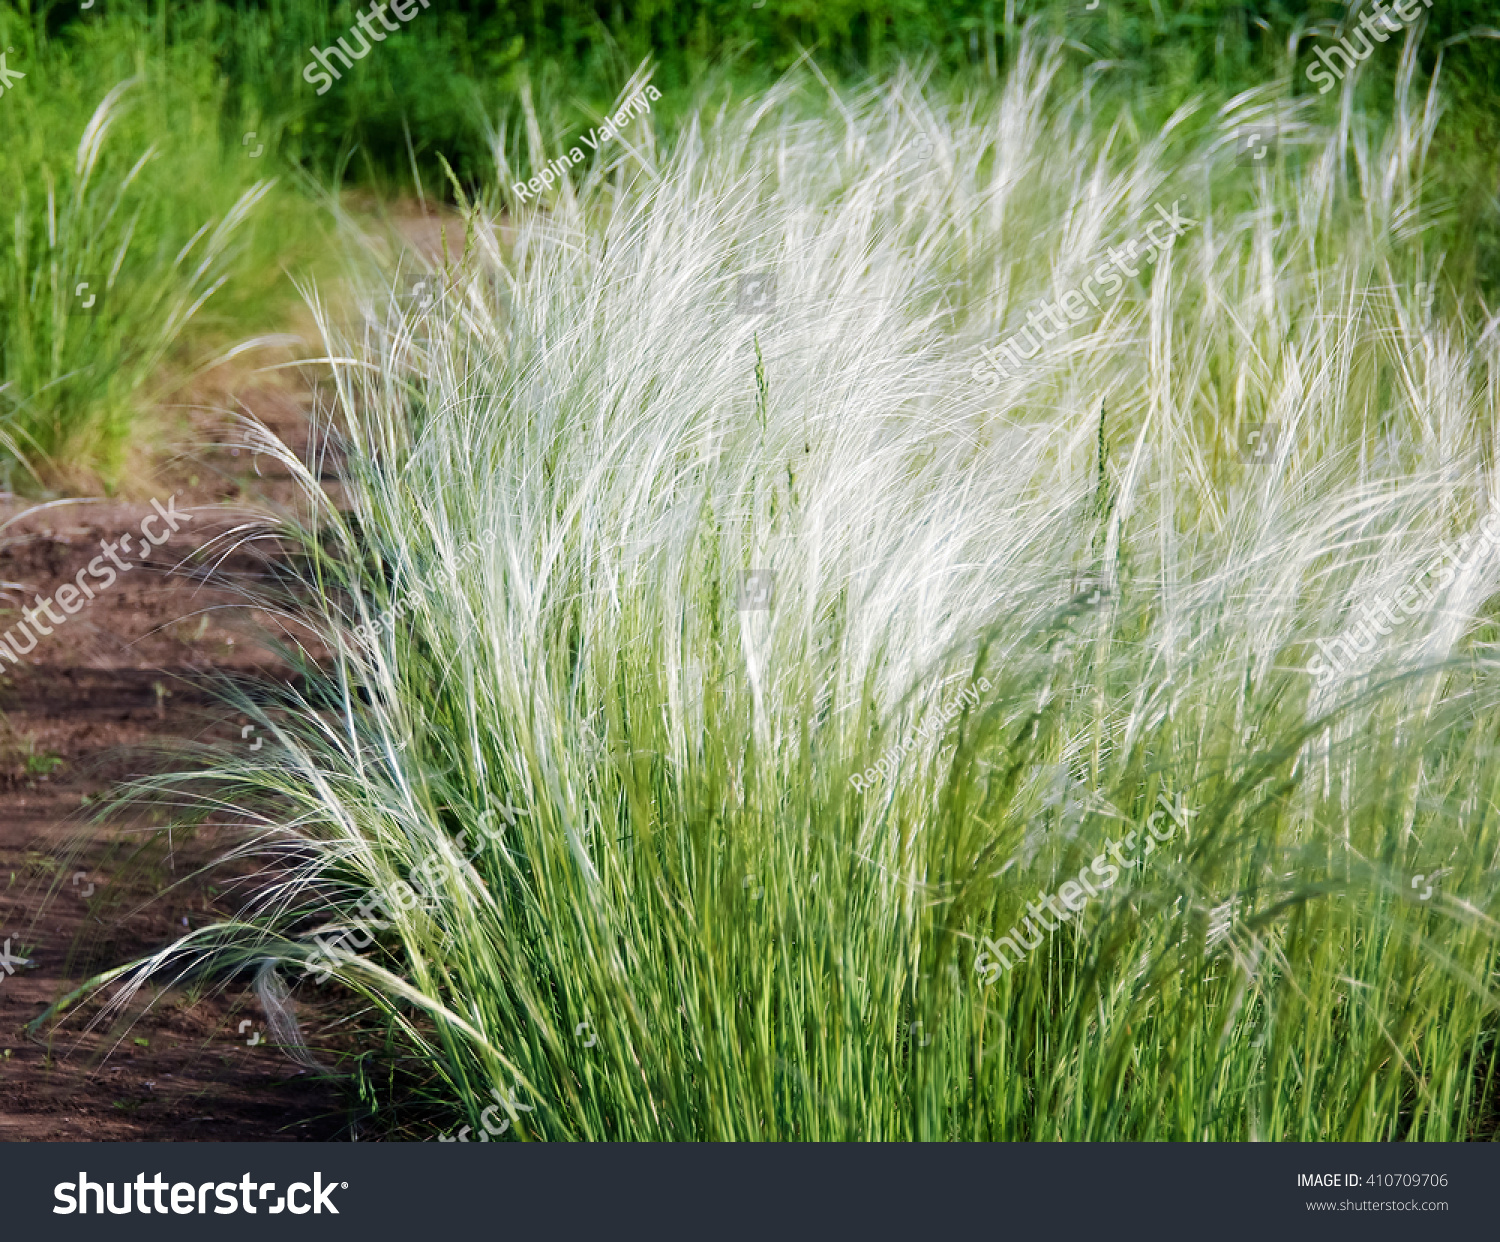 Feather grass found ornamental plants garden stock photo for Ornamental feather grass